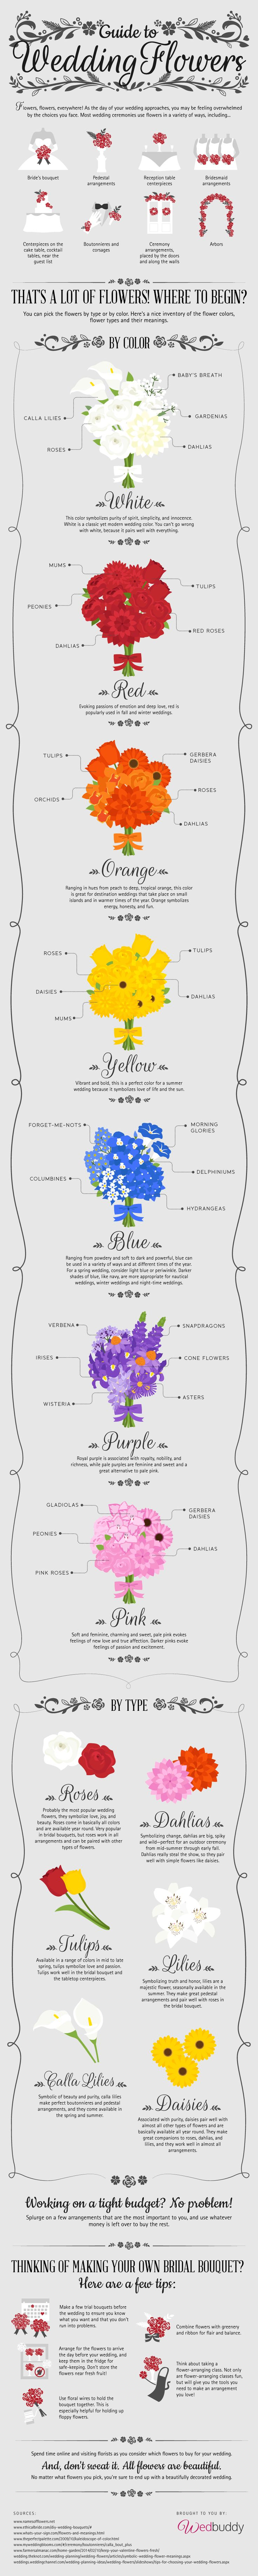 A Guide To Flowers - Wedbuddy Blog -  #Wedding #Reception #Party Re-pinned from Forever Friends Fine Stationery  Favors http://foreverfriendsfinestationeryandfavors.com